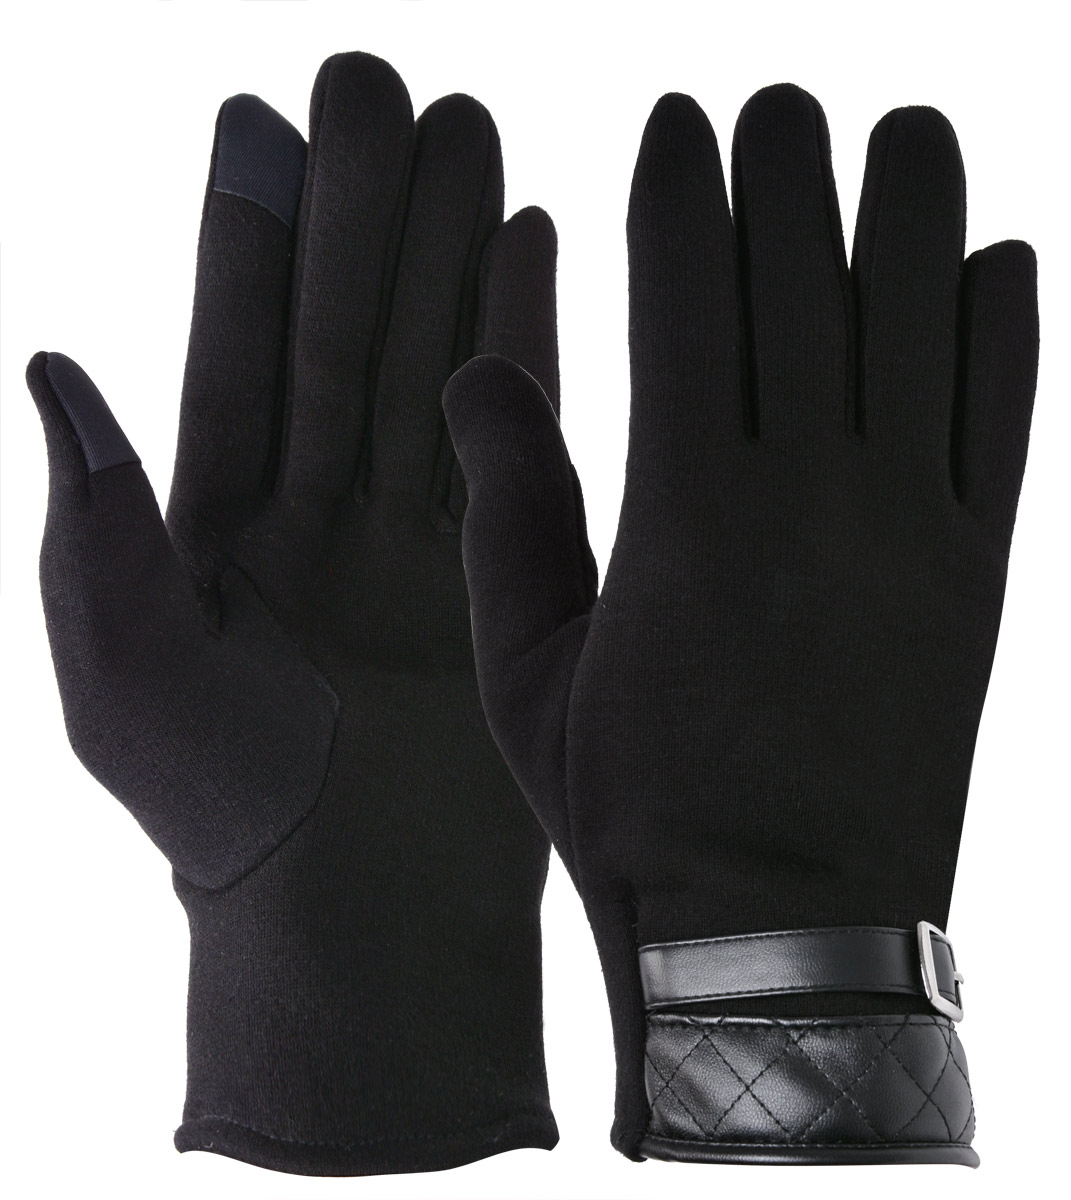 Mens Winter Gloves, Coxeer Outdoor Work Motorcycle Glove Touchscreen Gloves for Smart... by Winter Gloves